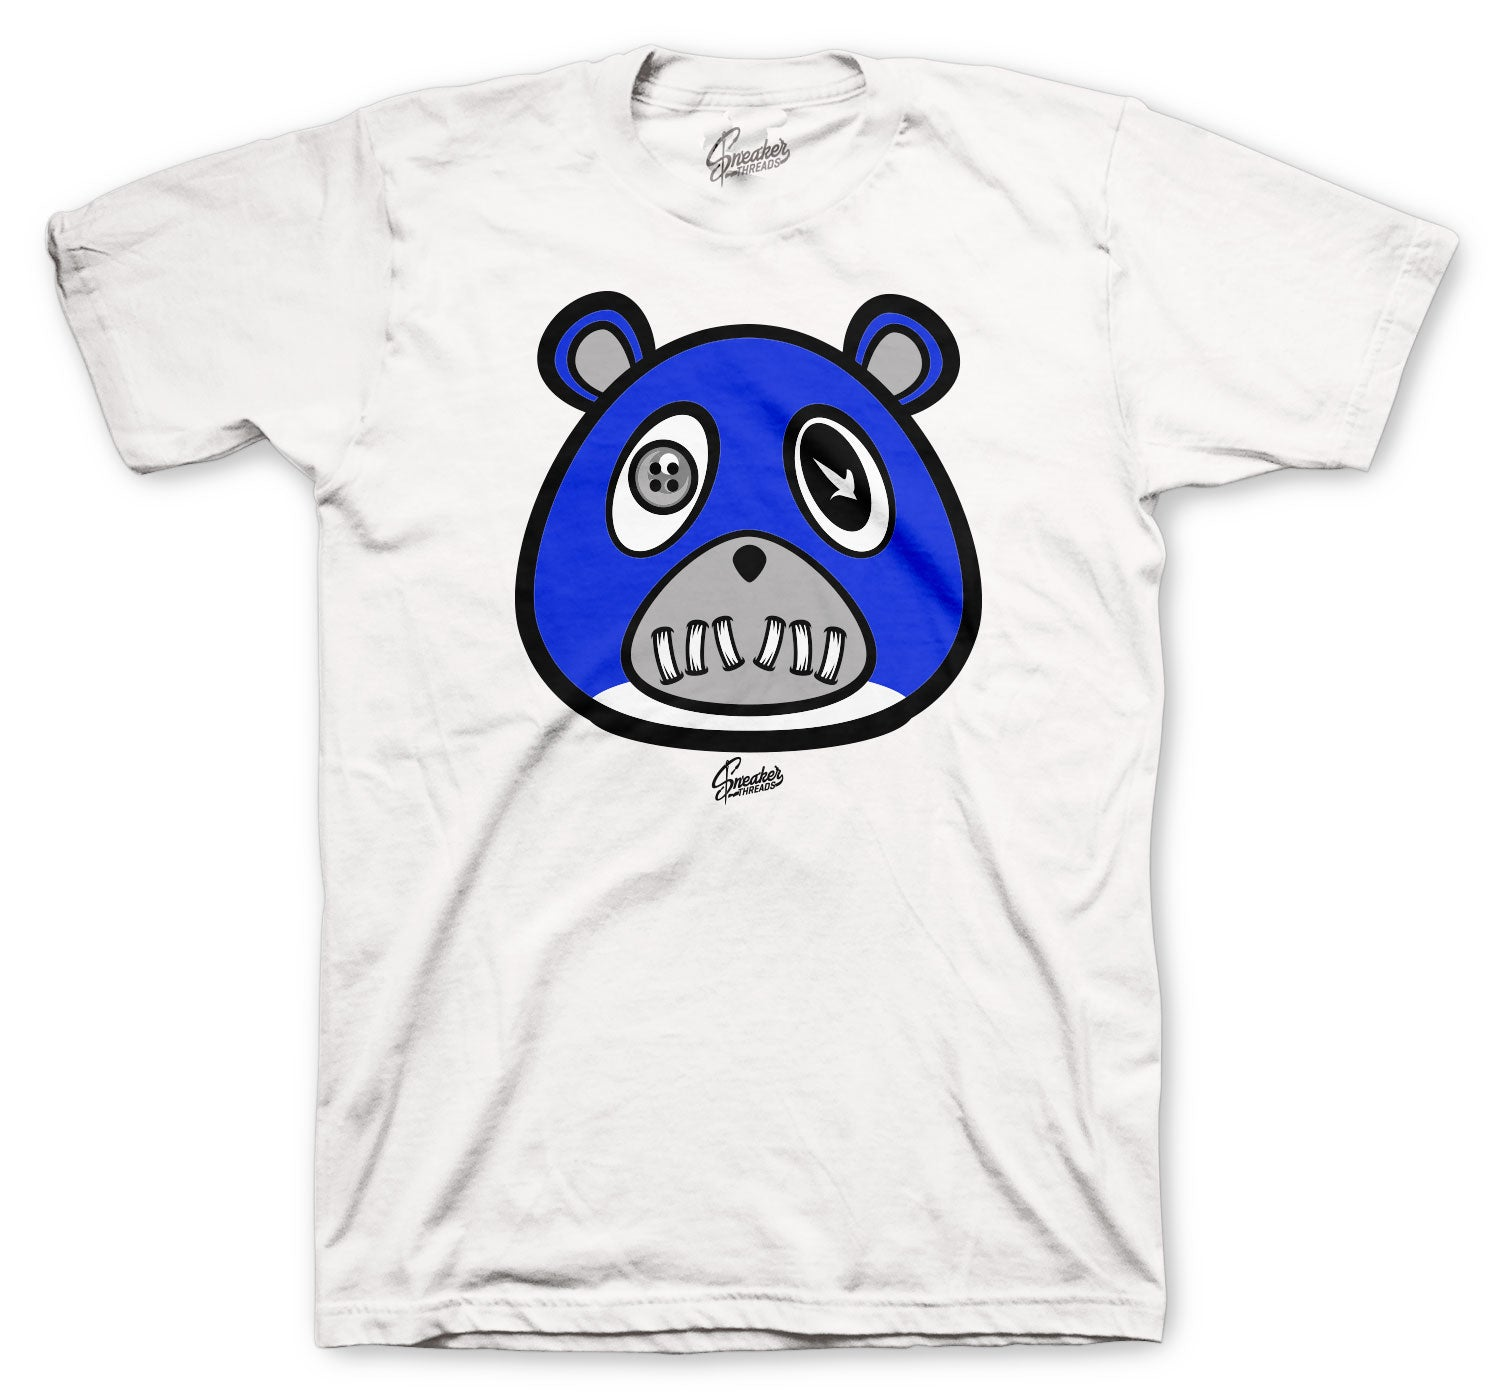 Jordan 14 Hyper Royal Shirt - ST Bear - White